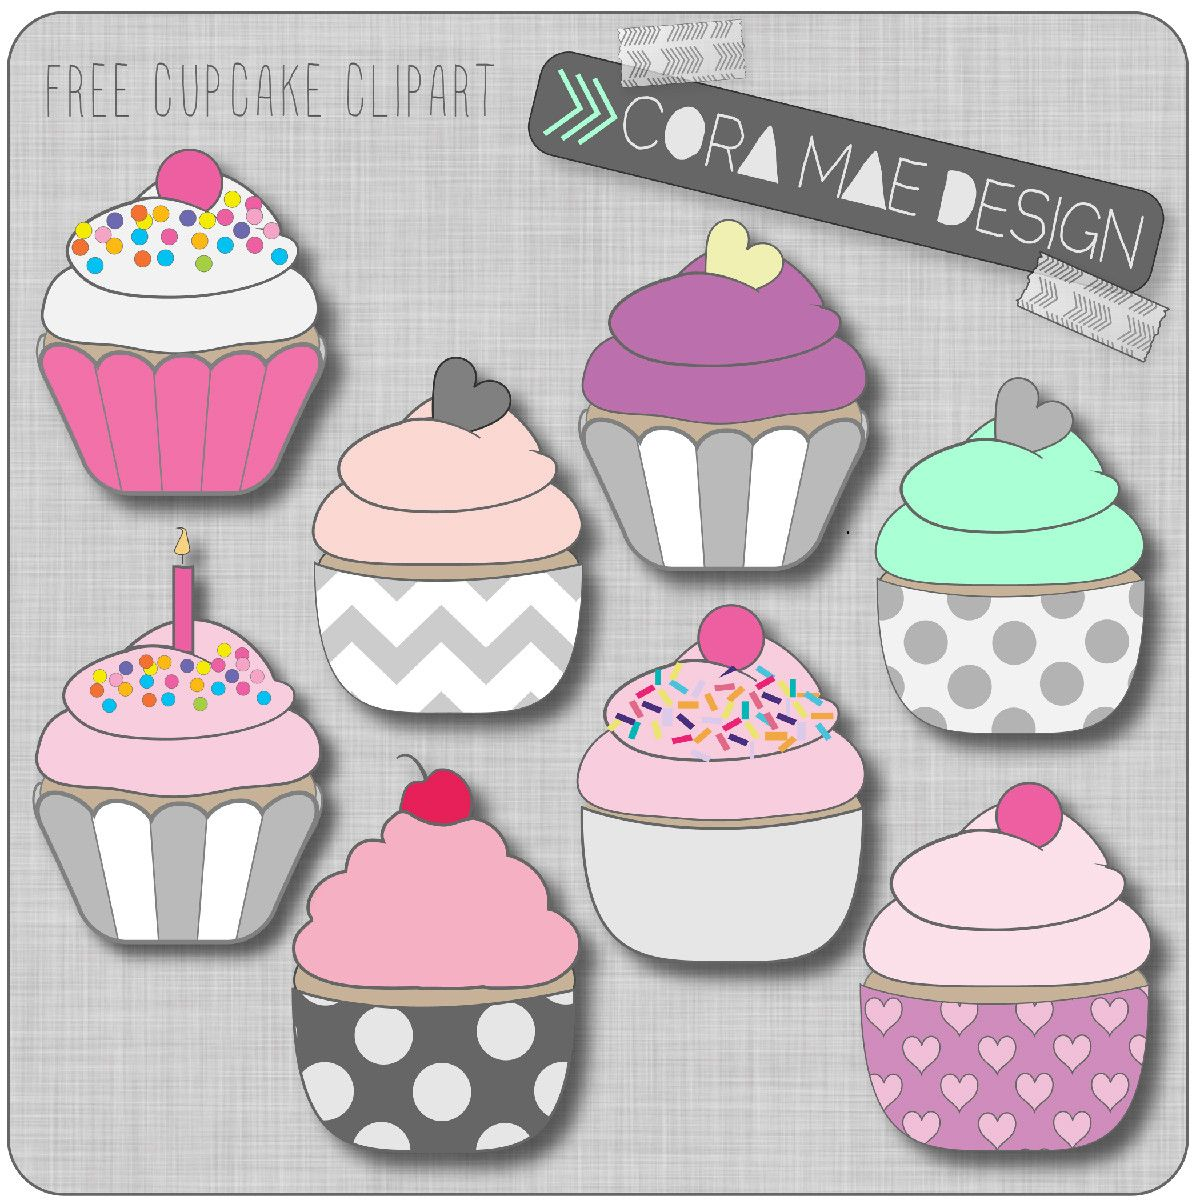 Free printable cupcake clipart for junk journals, art journals or.